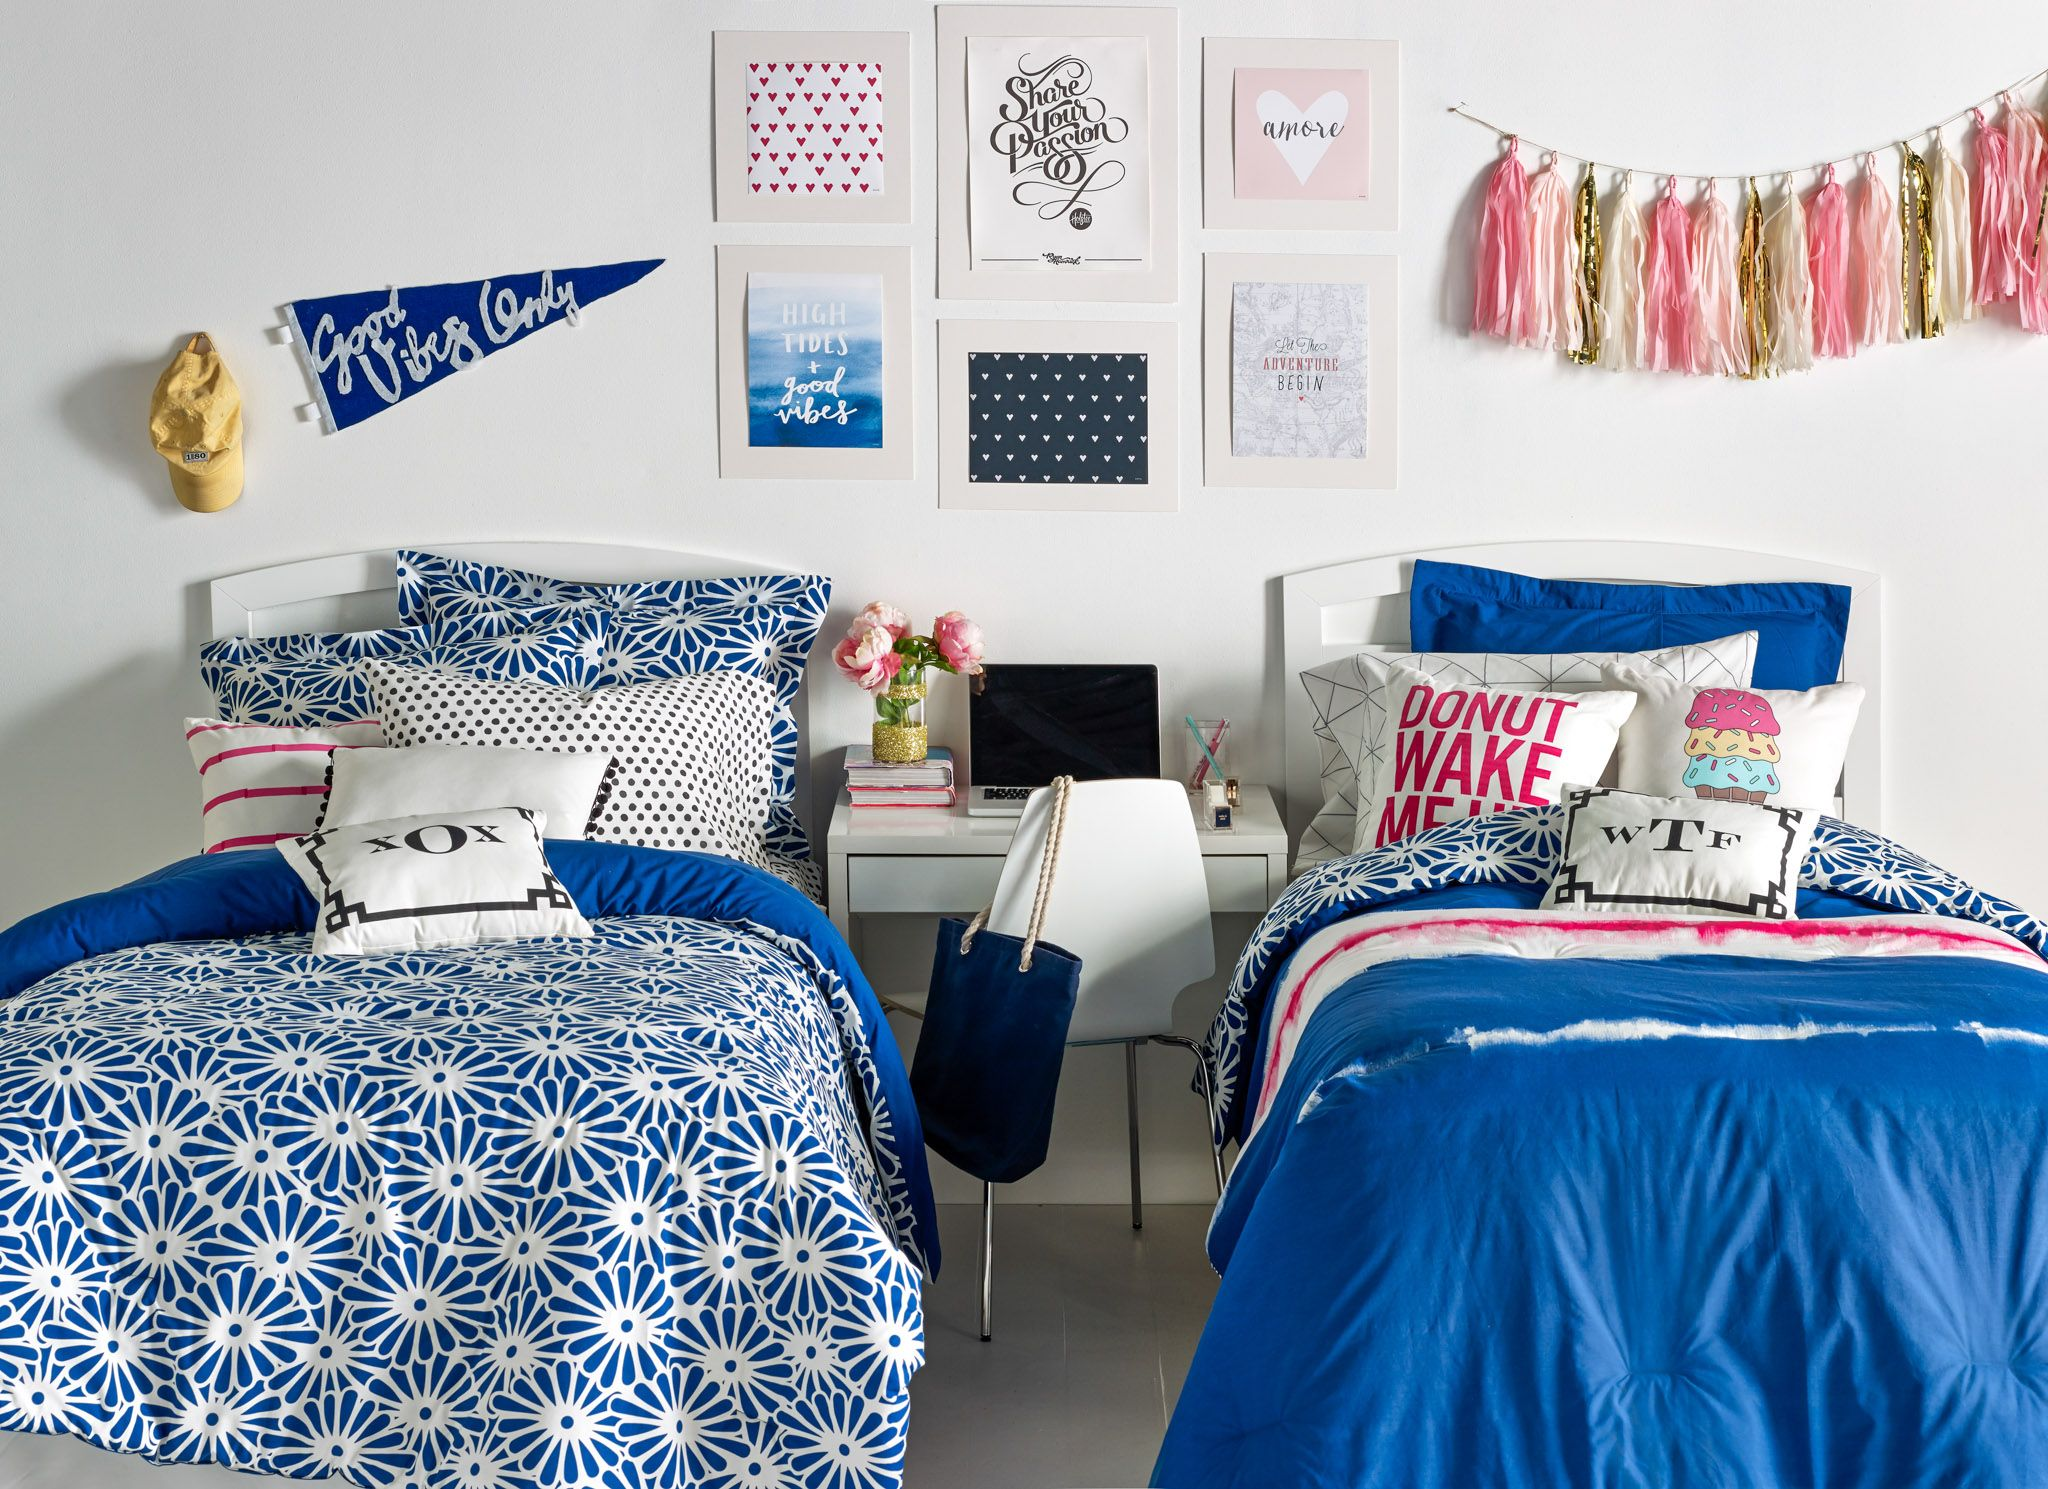 Transform your dorm room from drab to fab with these inexpensive transform your dorm room from drab to fab with these inexpensive diy decor ideas courtesy amipublicfo Choice Image